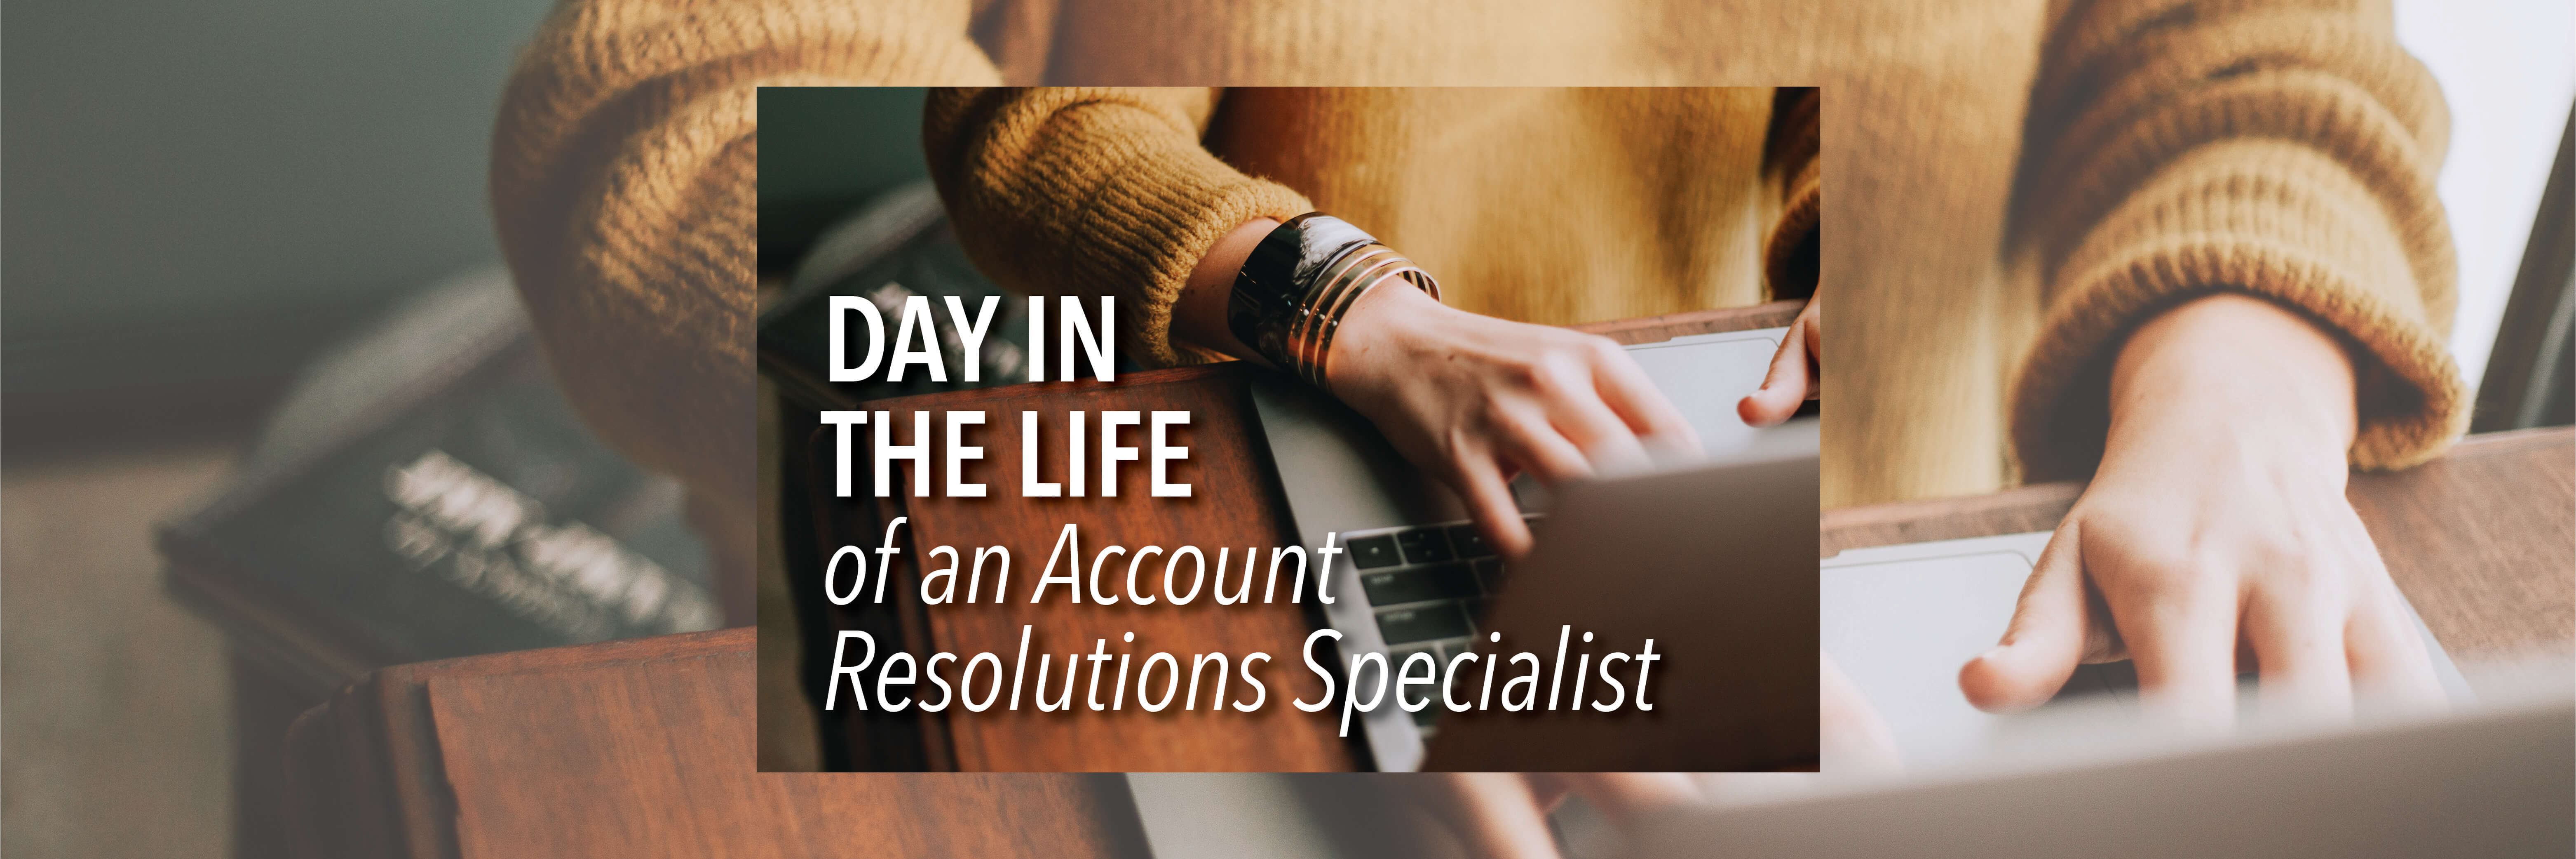 A Day in the Life of Denise, an Account Resolutions Specialist